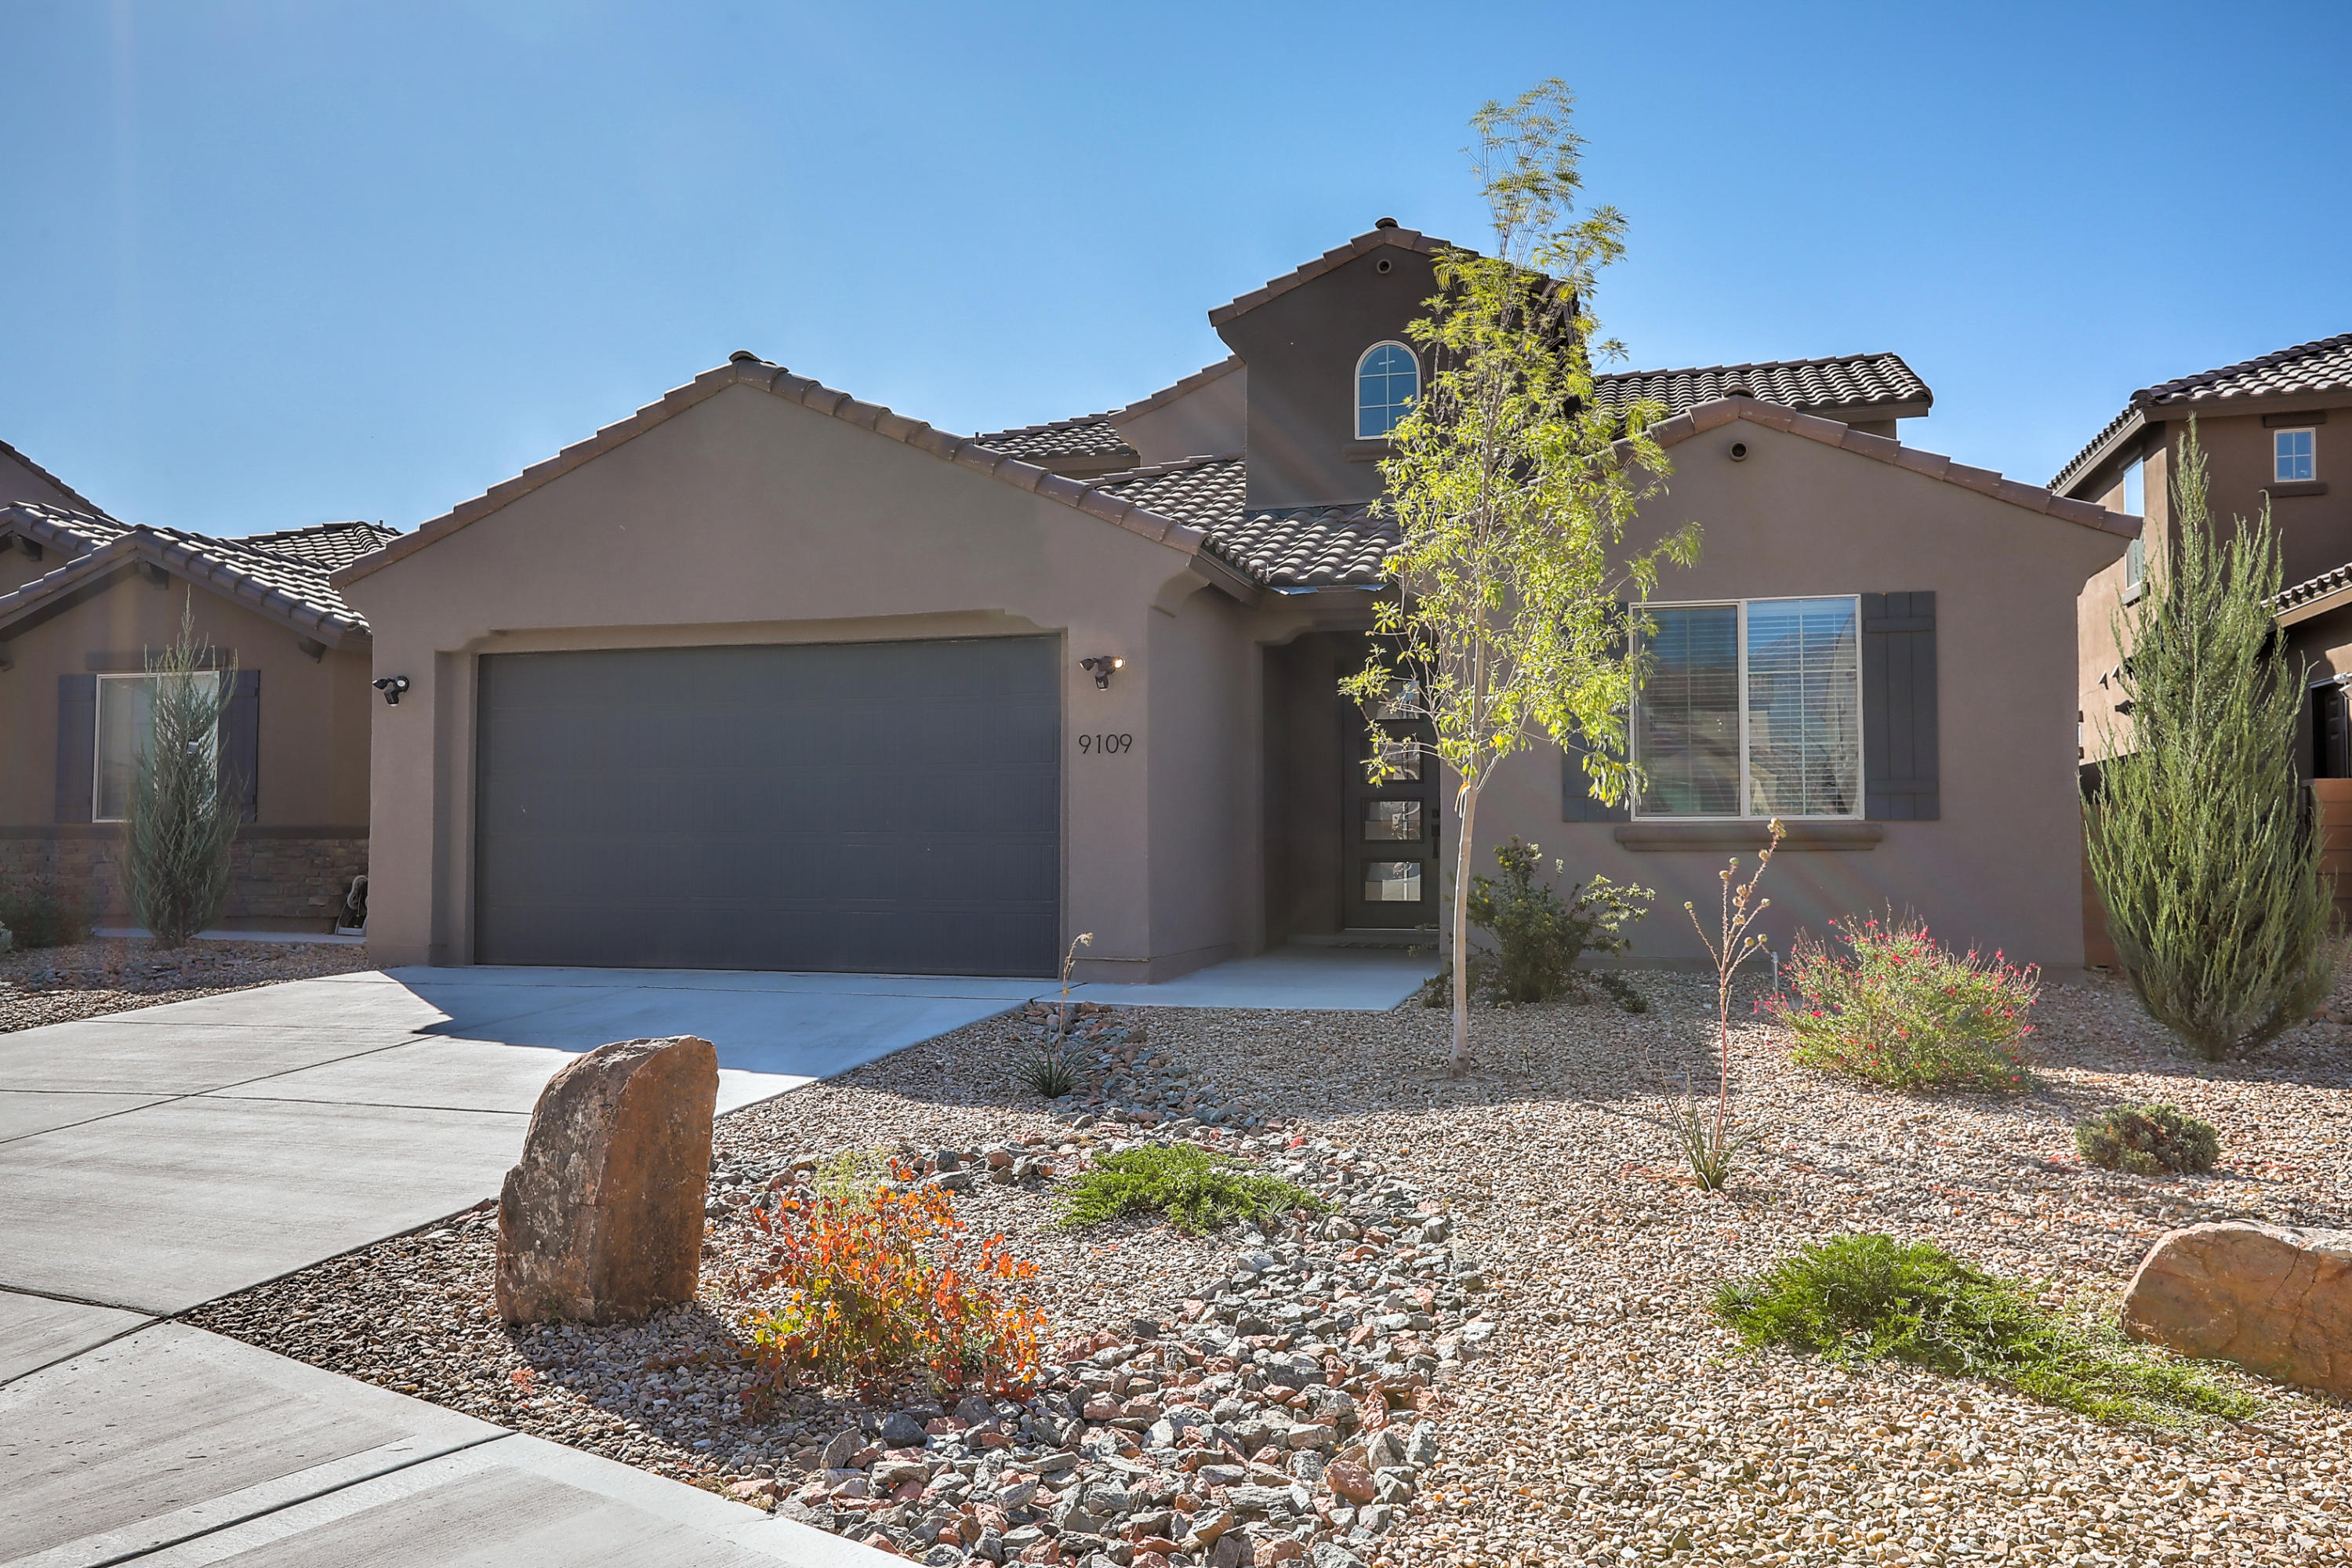 This 1.5 year old custom built Pulte home is nestled in the gated Tierra Serena subdivision. The home has 2 master bedrooms, one upstairs and one downstairs, both with double sinks, large showers, and walk in closets. The home also has 2 living areas, one upstairs and one down. You'll enjoy wonderful features in the kitchen like granite counter tops, Maple cabinets, Whirlpool stainless steel appliances, walk in pantry, breakfast nook, formal dining, and an office area. The backyard is cozy with a covered patio and turf yard. The home itself has refrigerated air, tankless water heater, oversized garage, and Taexx pest defense system. It's a Build Green NM Silver Certified home and has a transferable builders warranty!